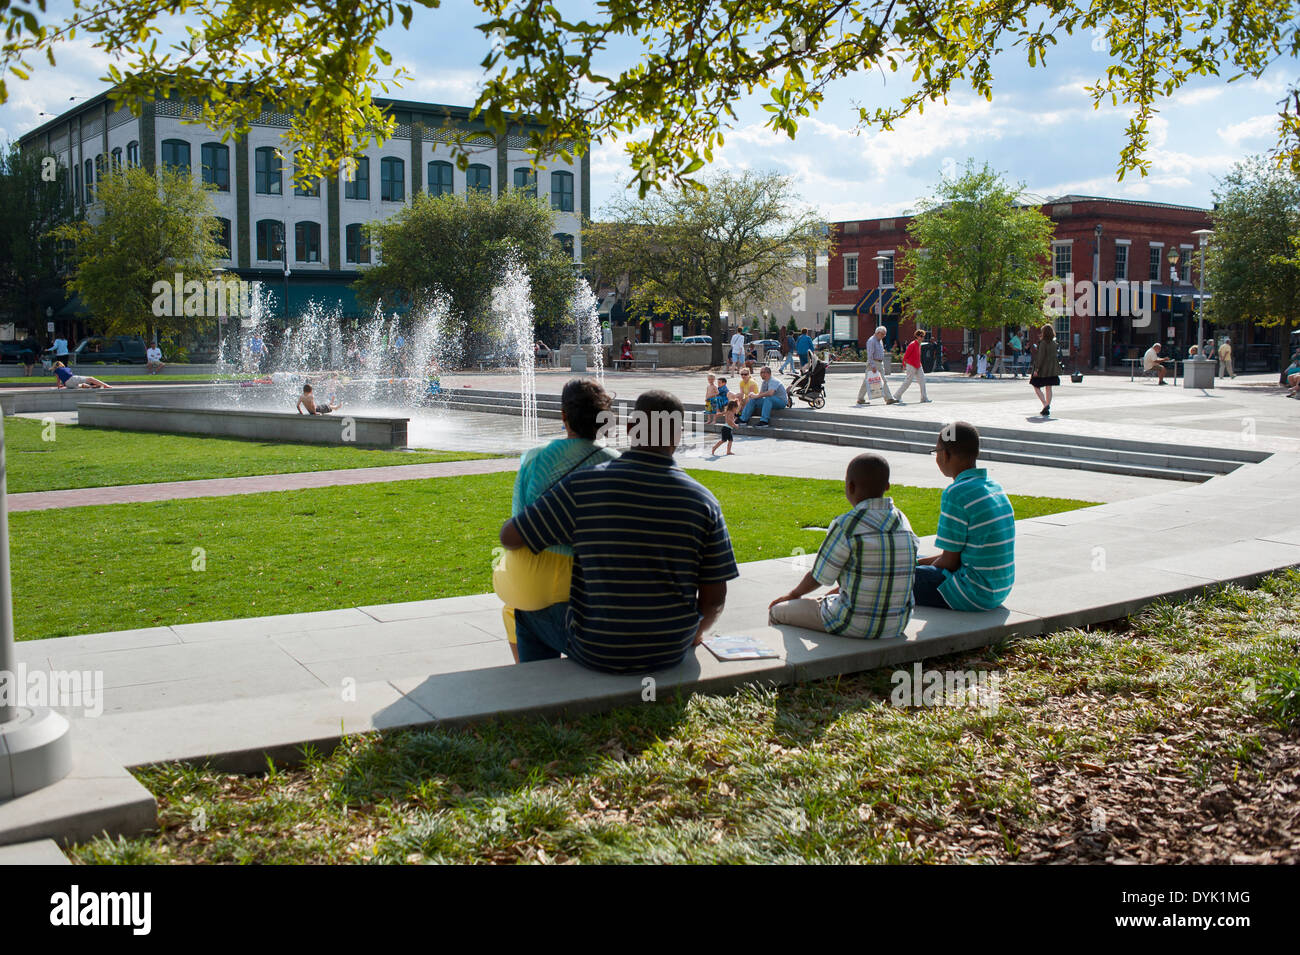 usa-georgia-ga-savannah-ellis-square-and-fountain-families-enjoying-DYK1MG.jpg